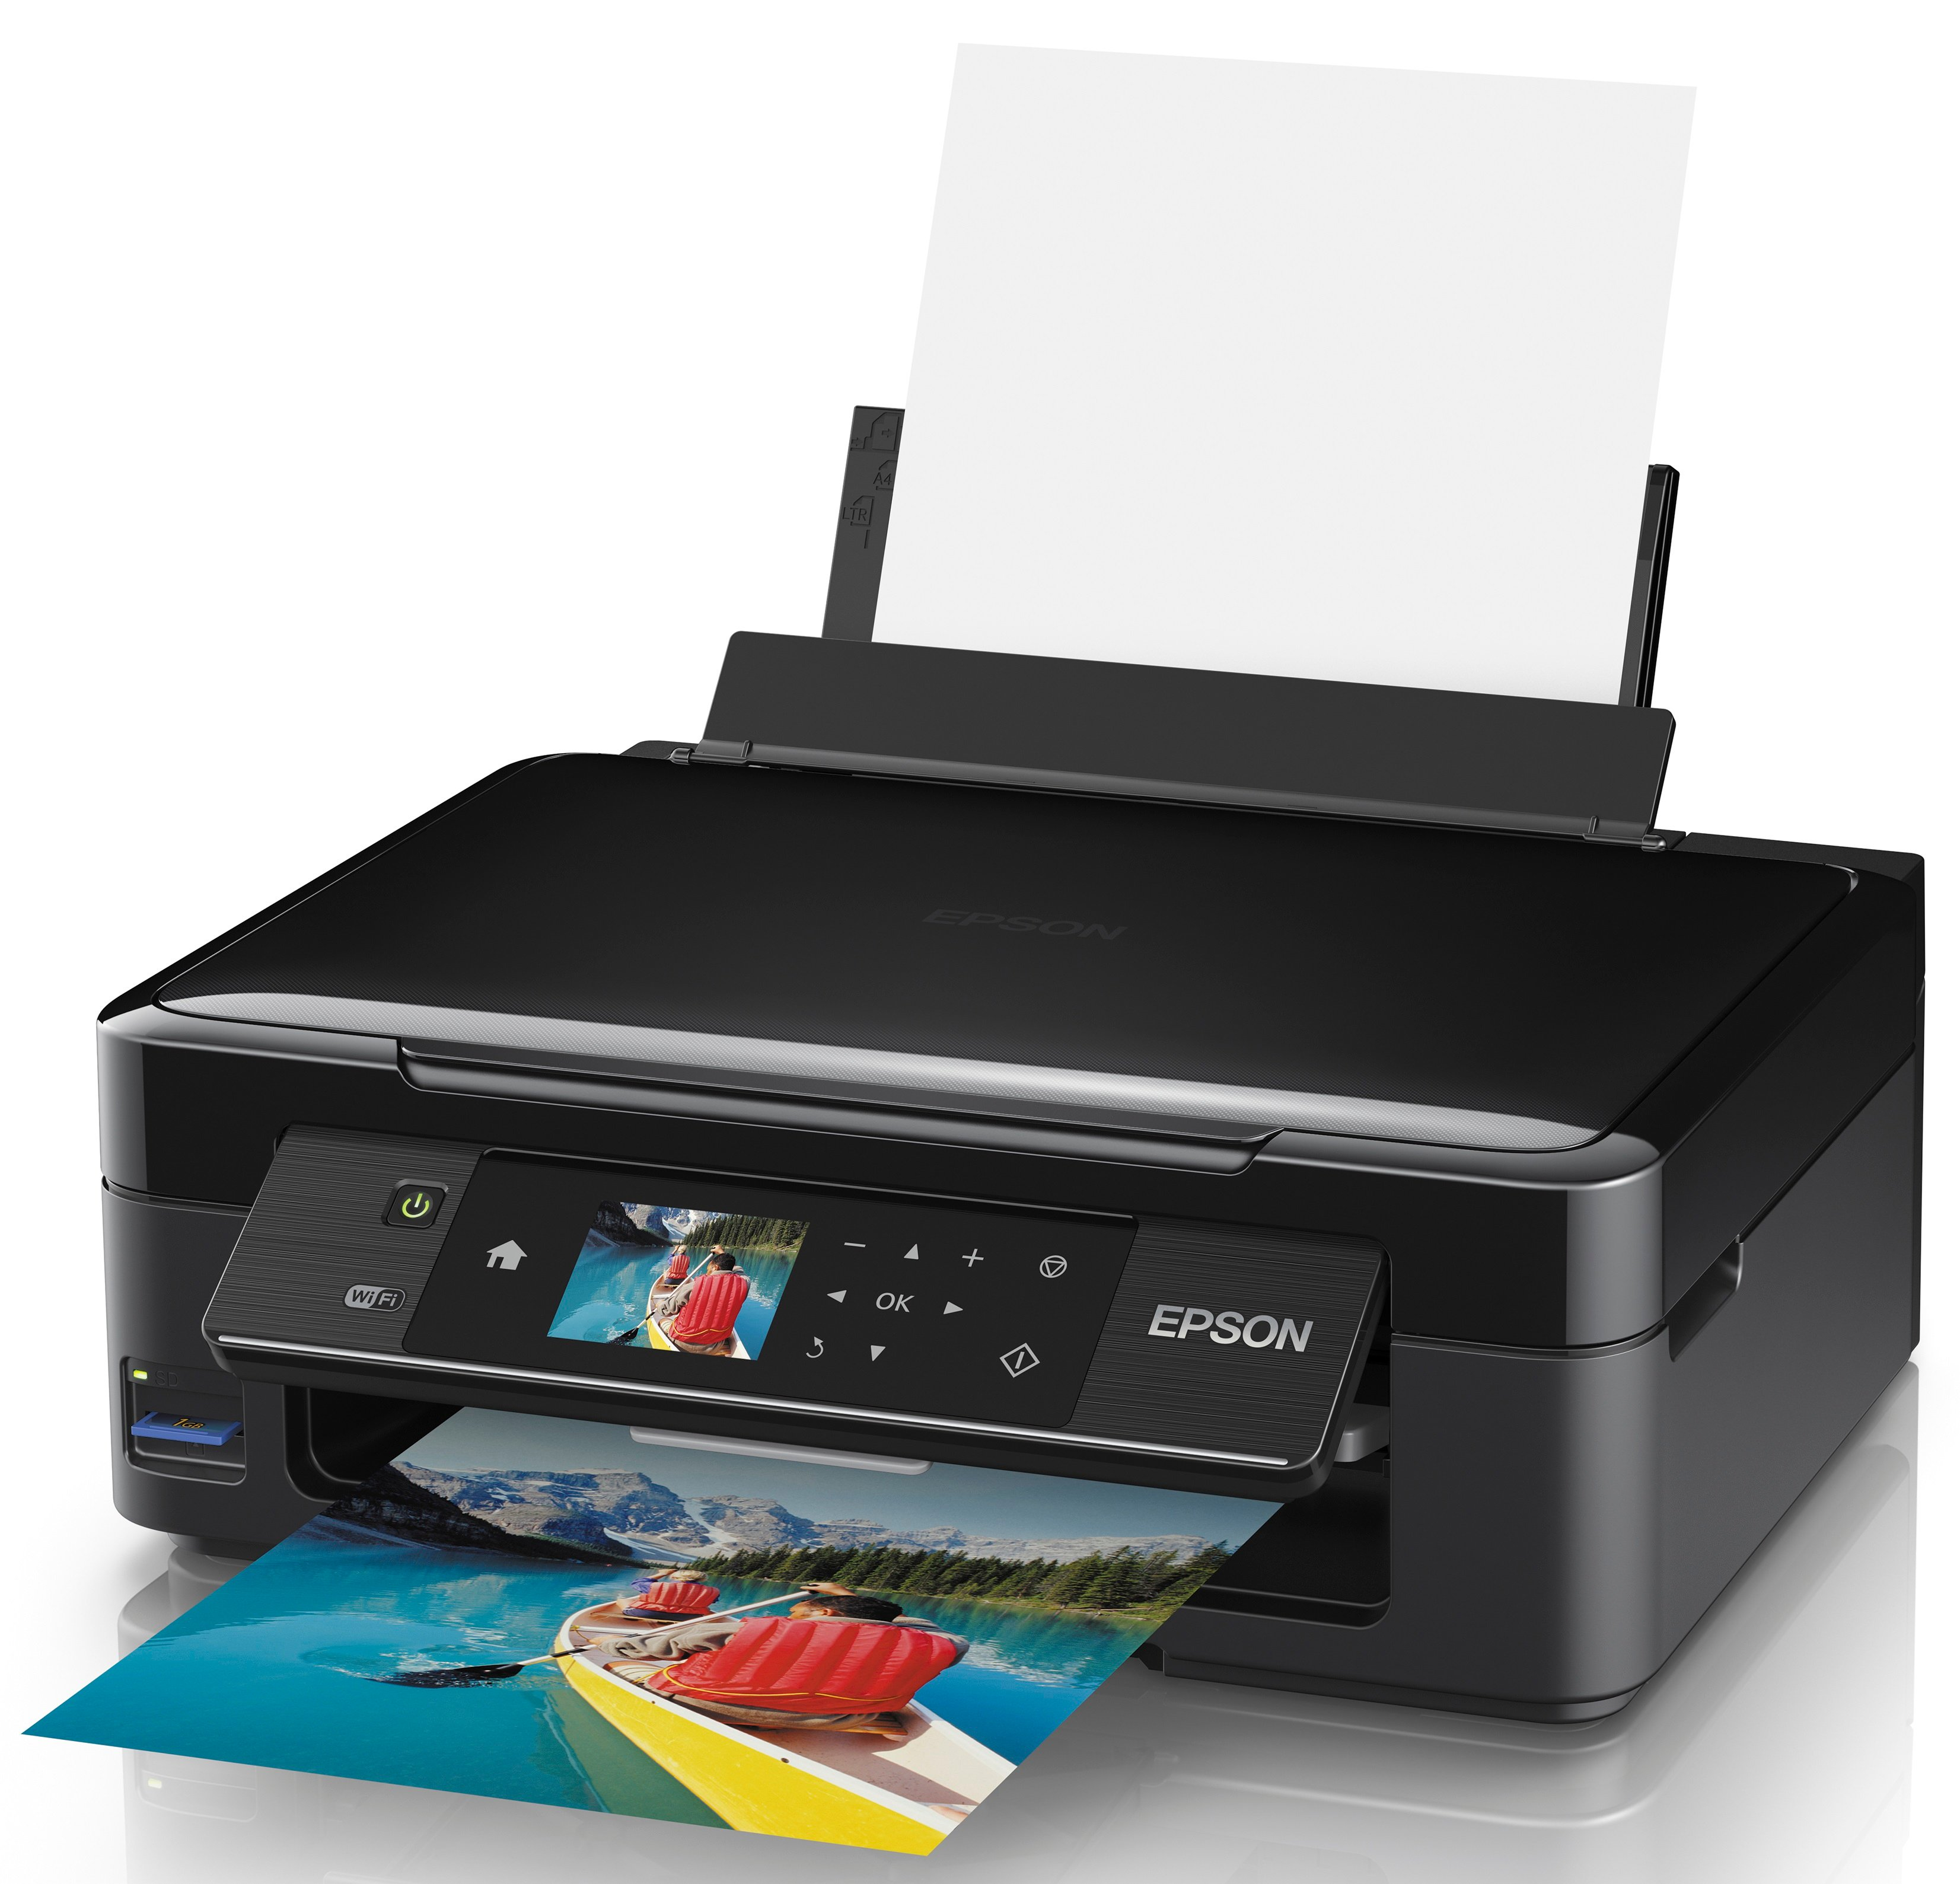 Epson Print and Scan for Windows 10 - Free download and ...